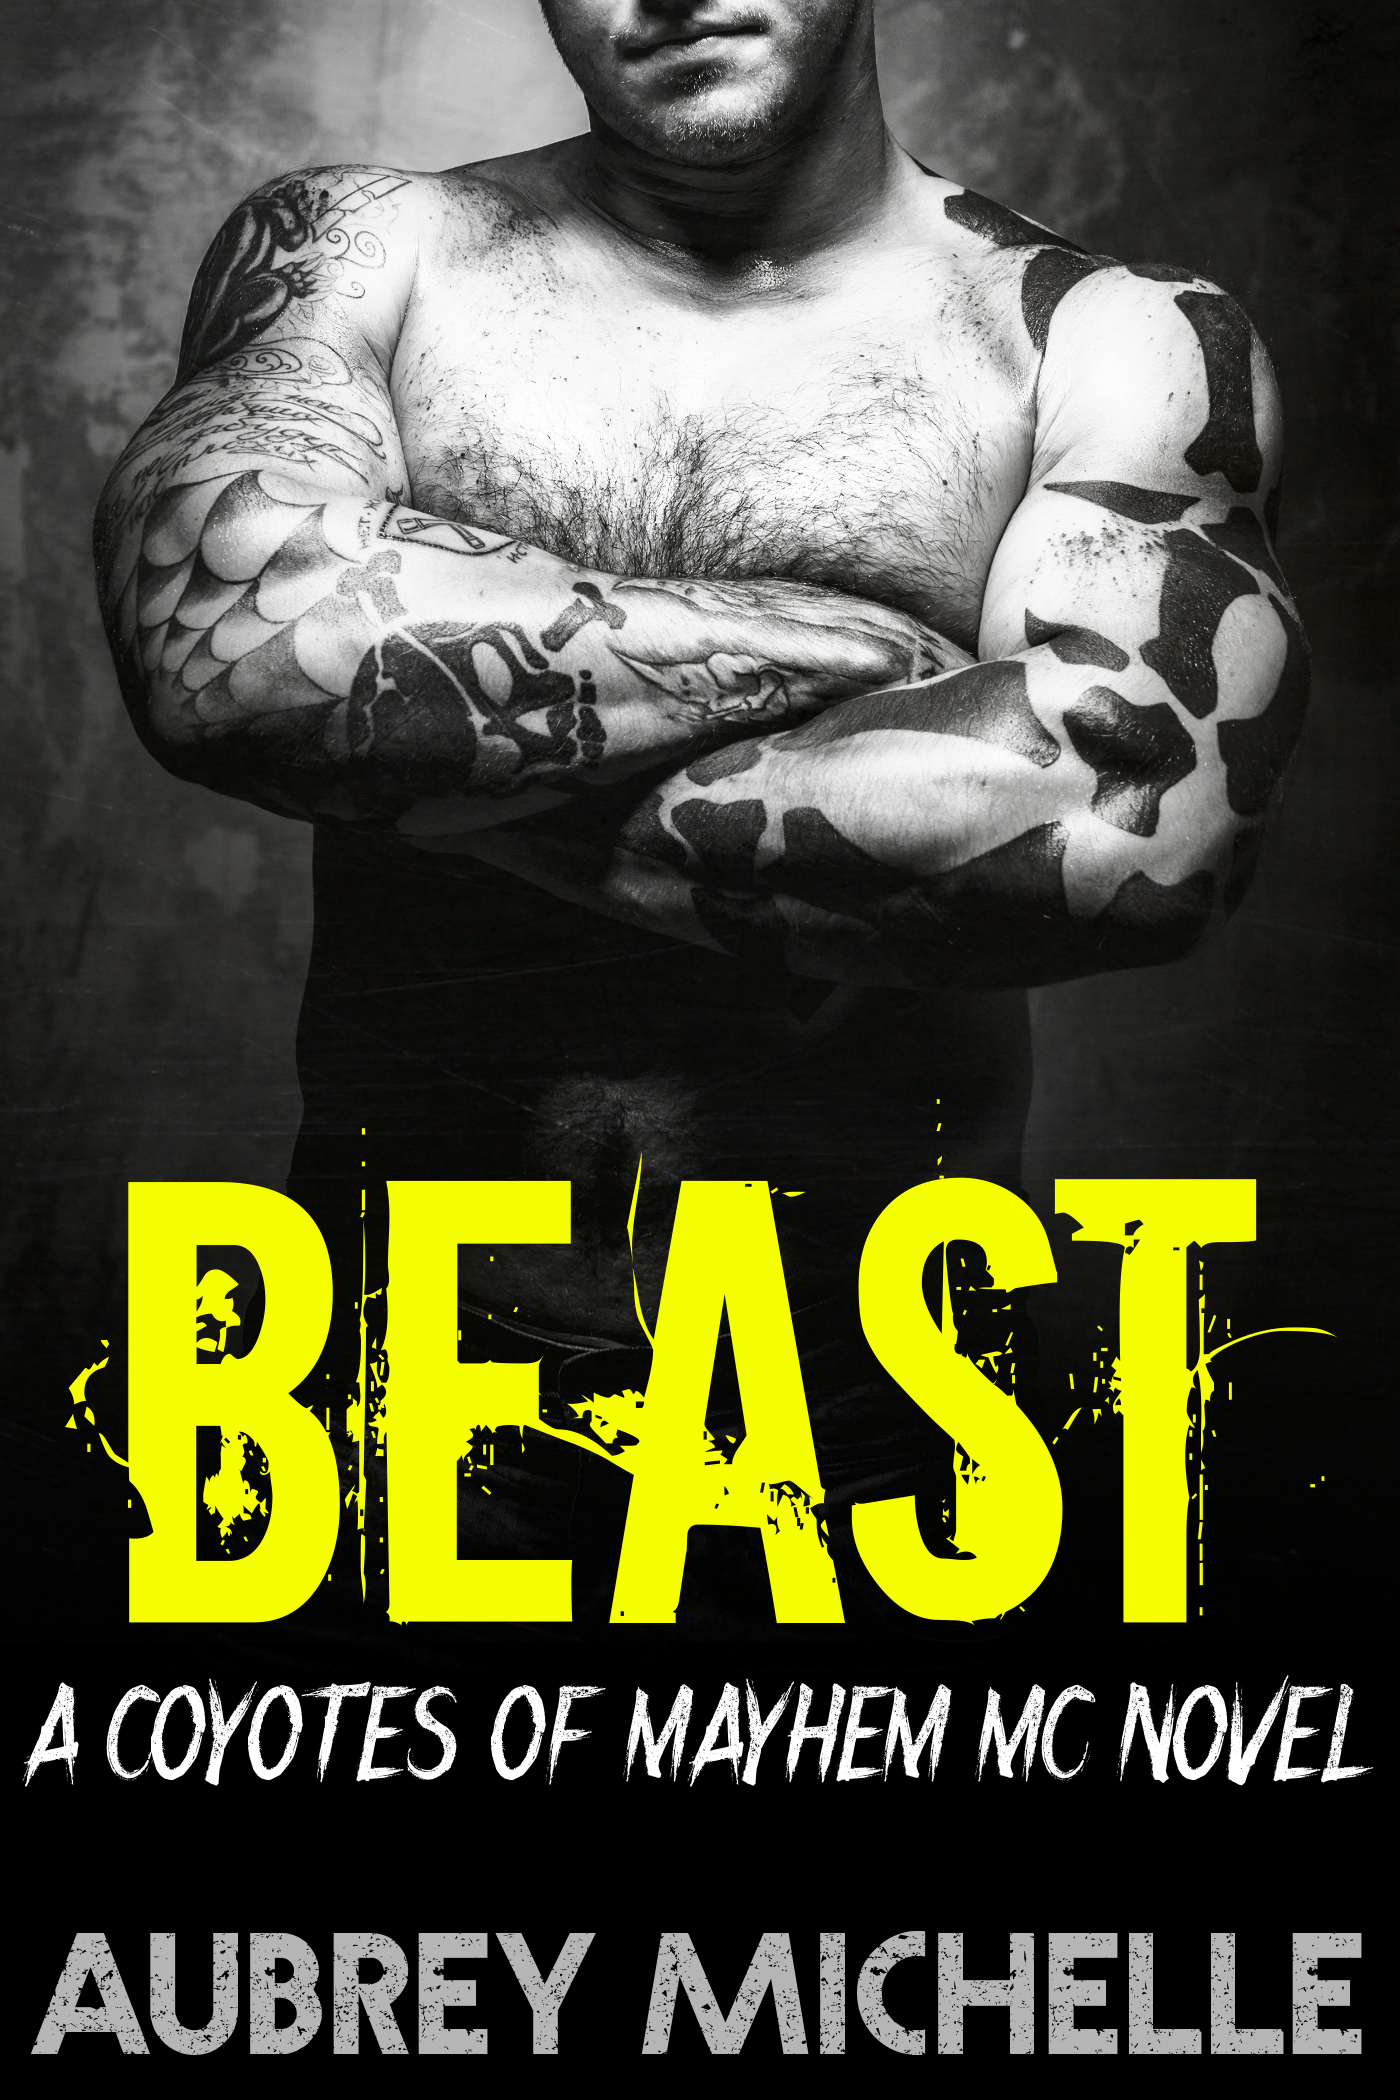 Love Aubrey Book Cover : Smashwords beast coyotes of mayhem mc motorcycle club